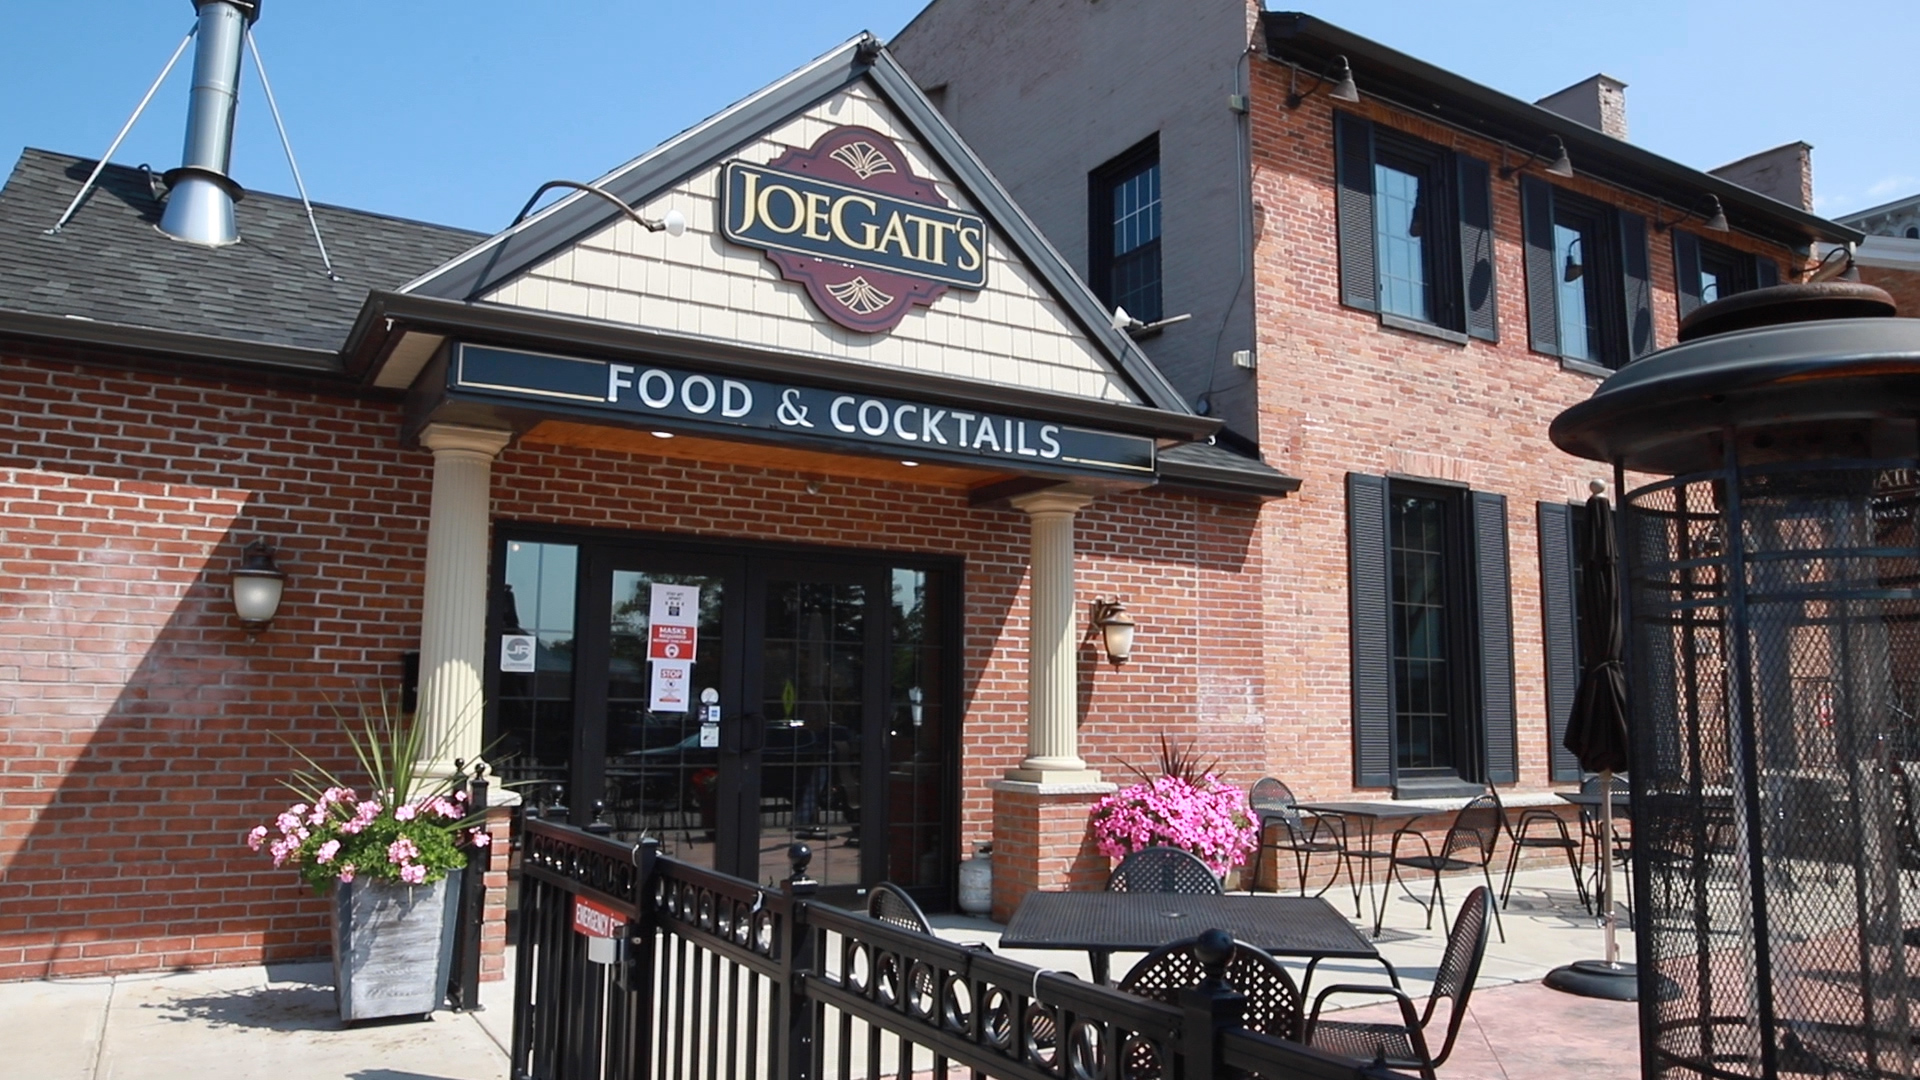 Joe-Gatts-Restaurant.jpg